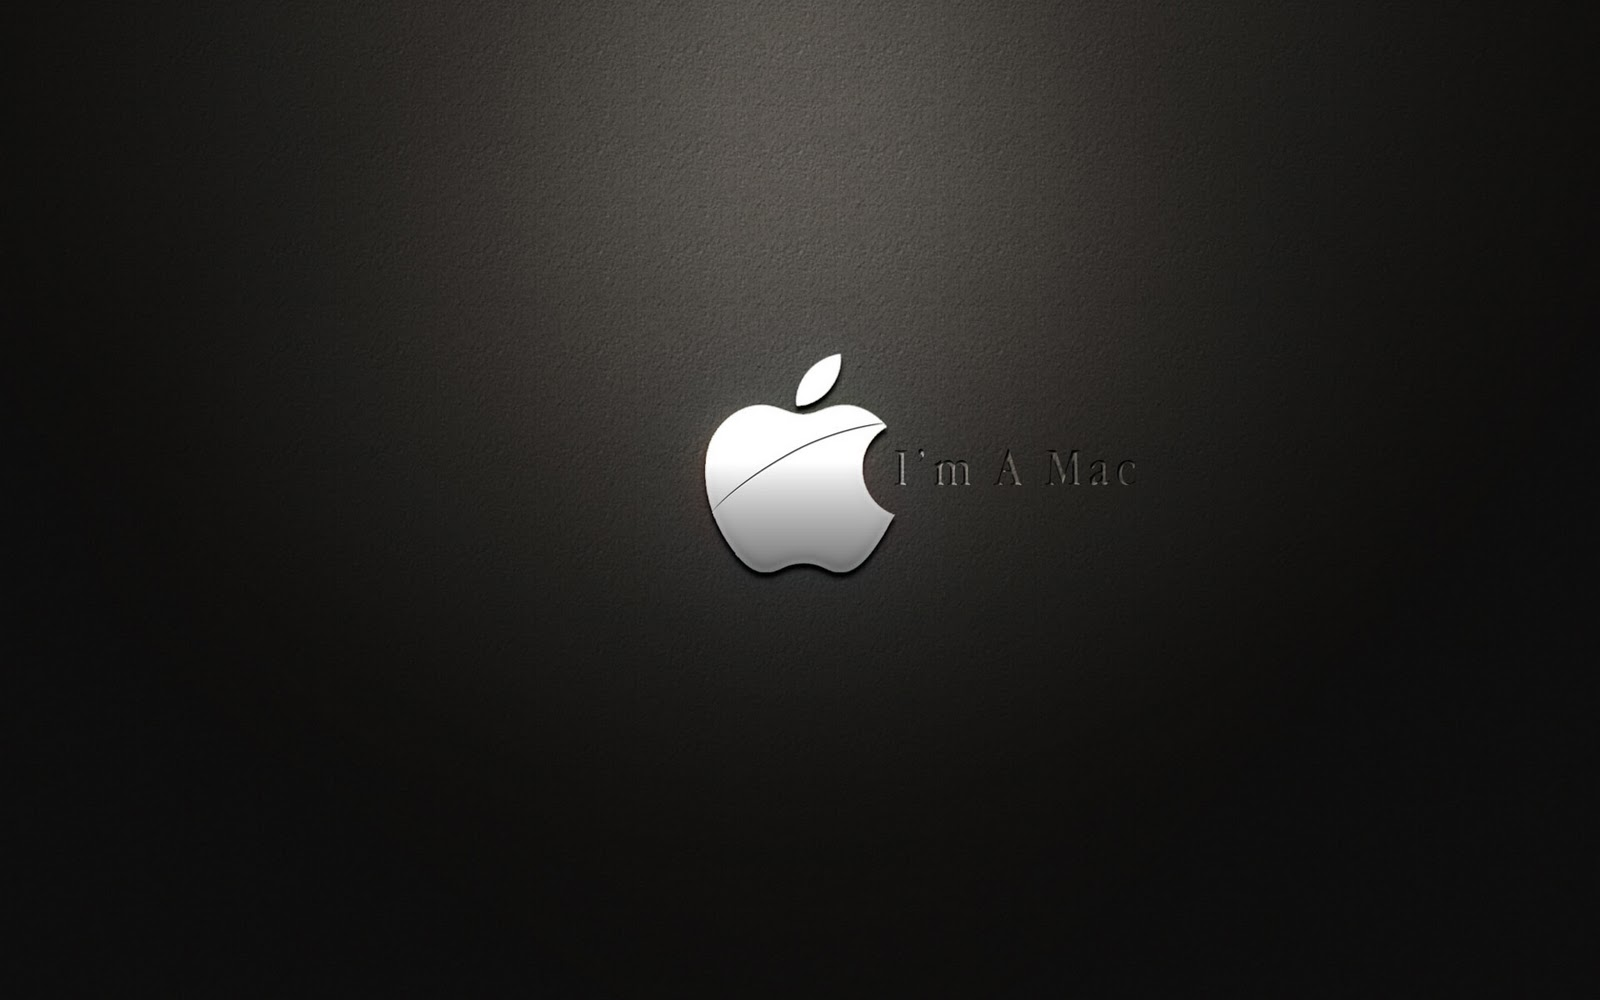 Alone And Sad Girl Hd Wallpaper Simple And Beautiful Apple Theme Wallpapers For Mac Laptop